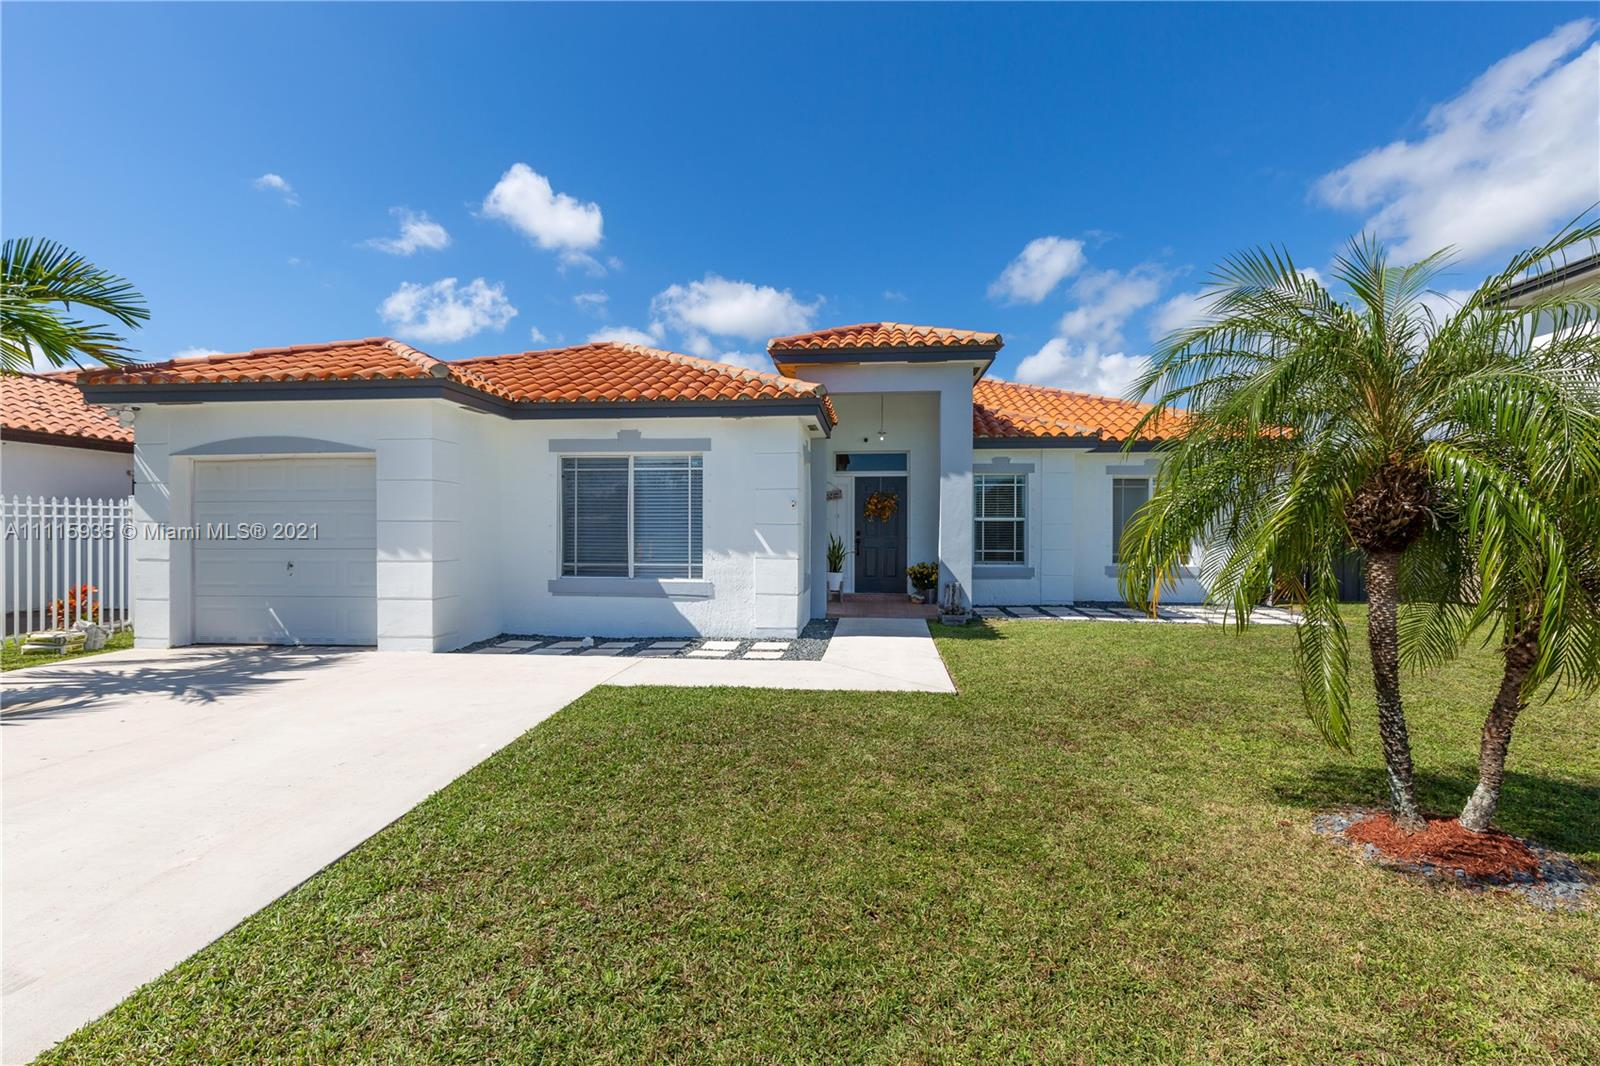 Single Family Home,For Sale,25136 SW 133rd Ave, Homestead, Florida 33032,Brickell,realty,broker,condos near me